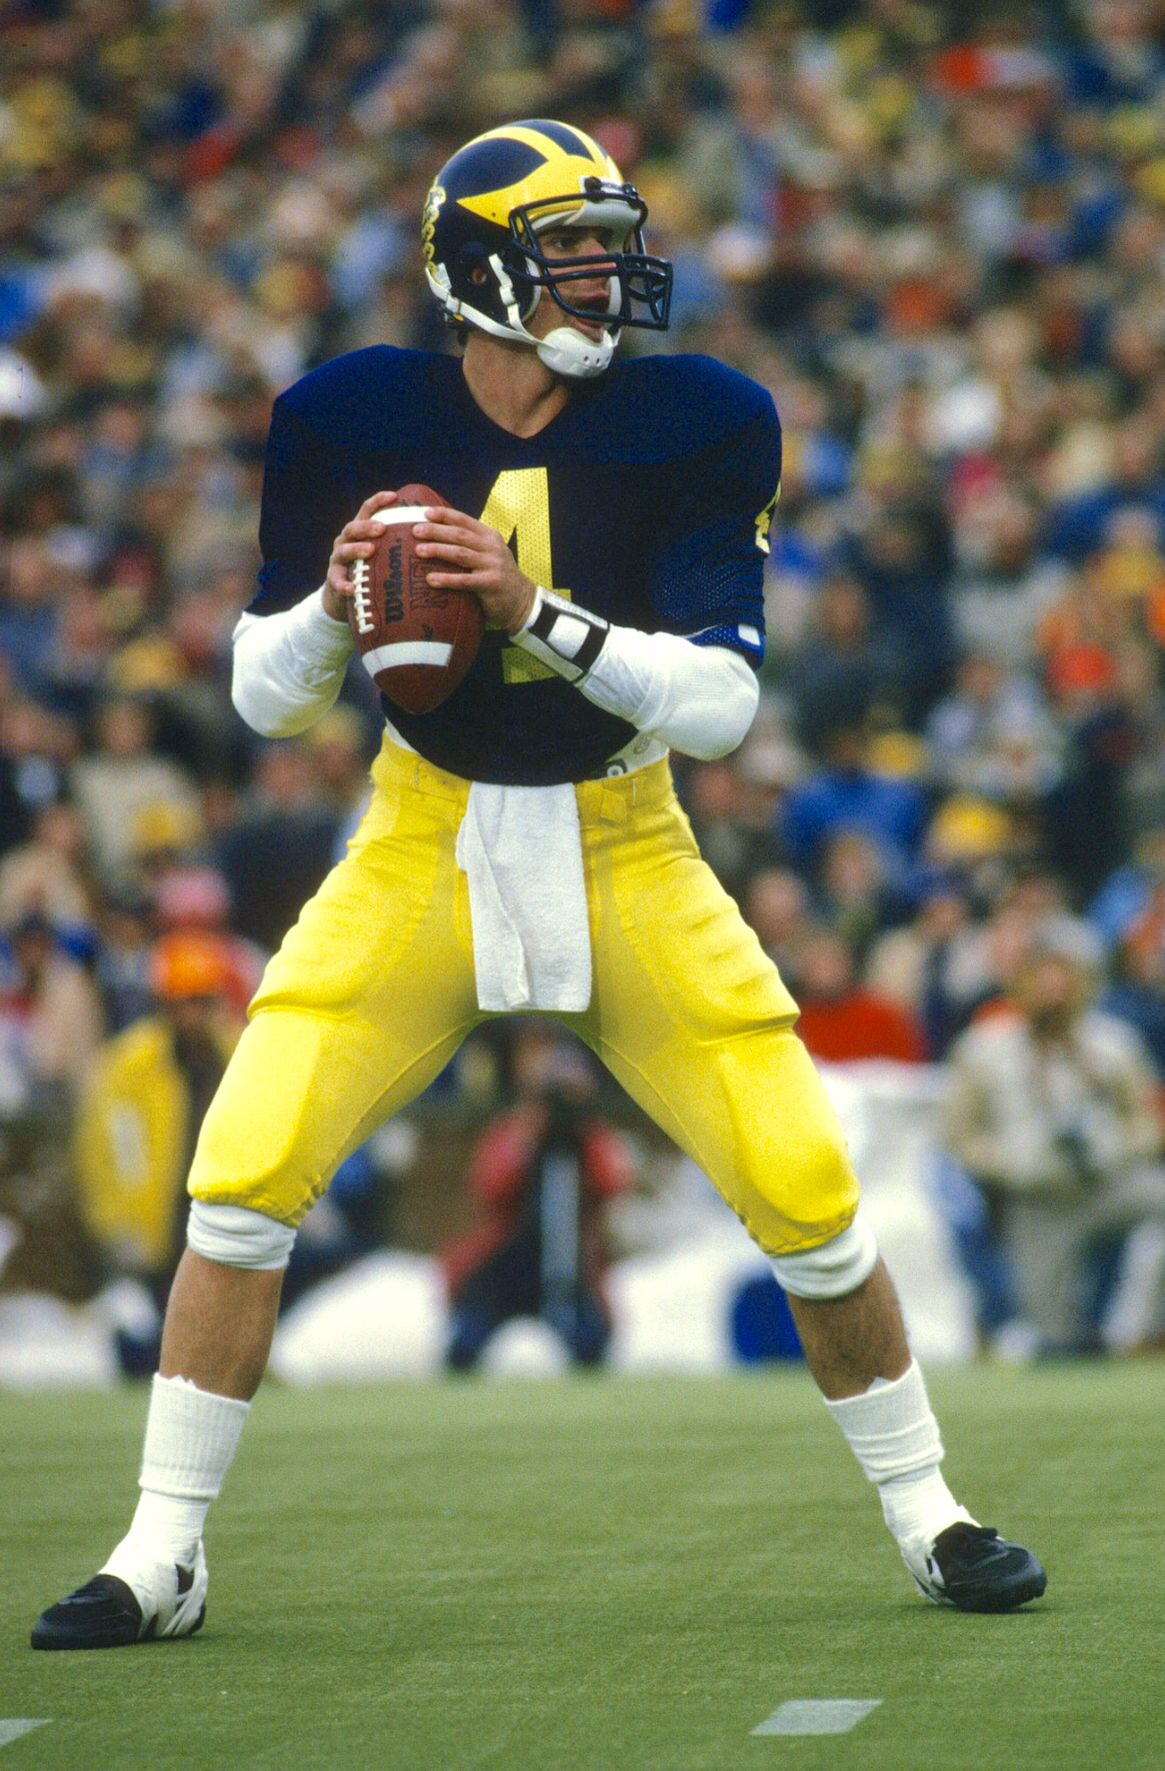 Jim Harbaugh Loved Him As A Qb He Was Great Michigan Wolverines Football Wolverines Football Michigan Sports